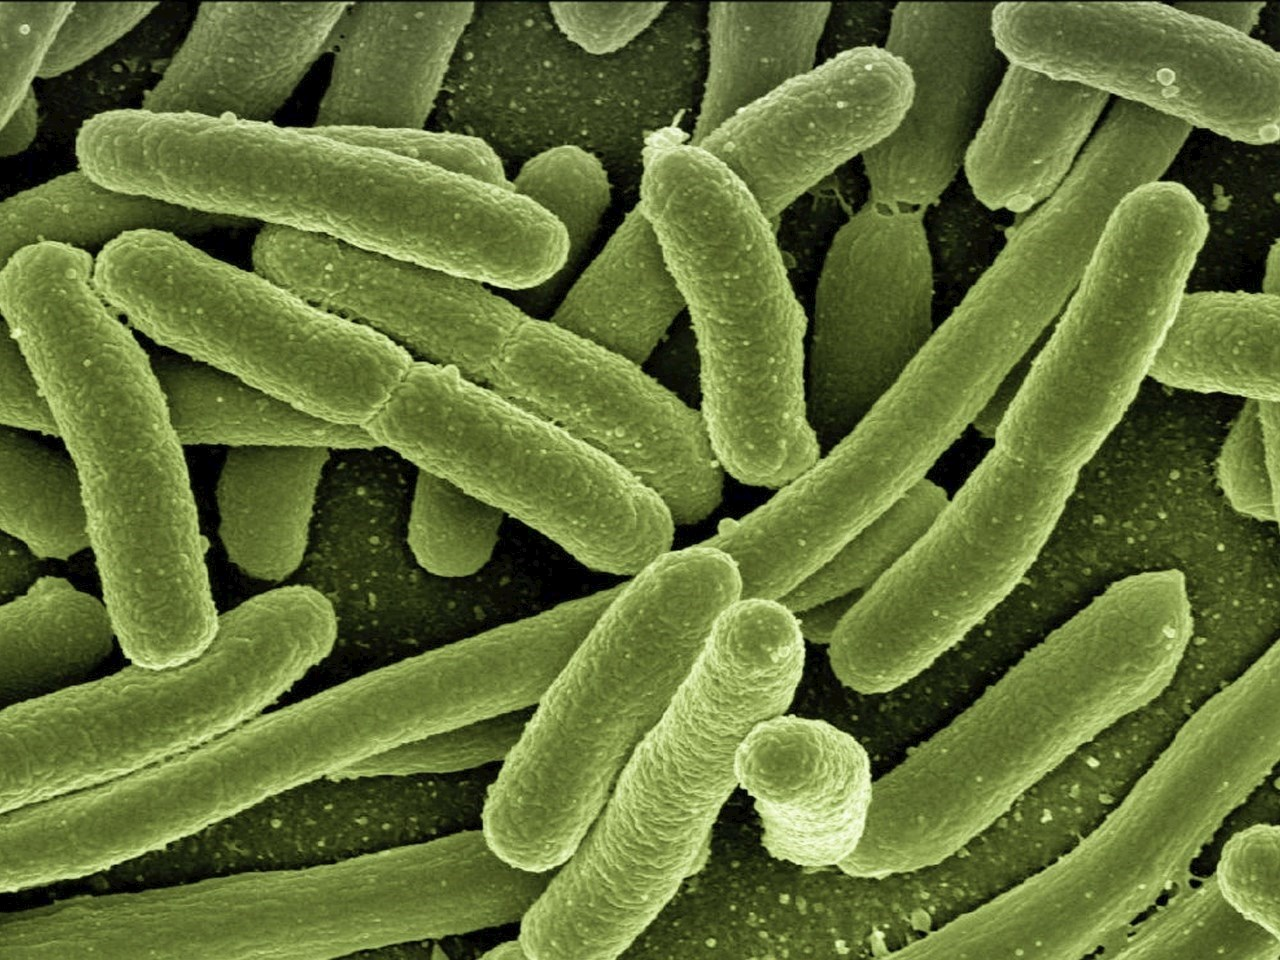 Bacteria from outer space